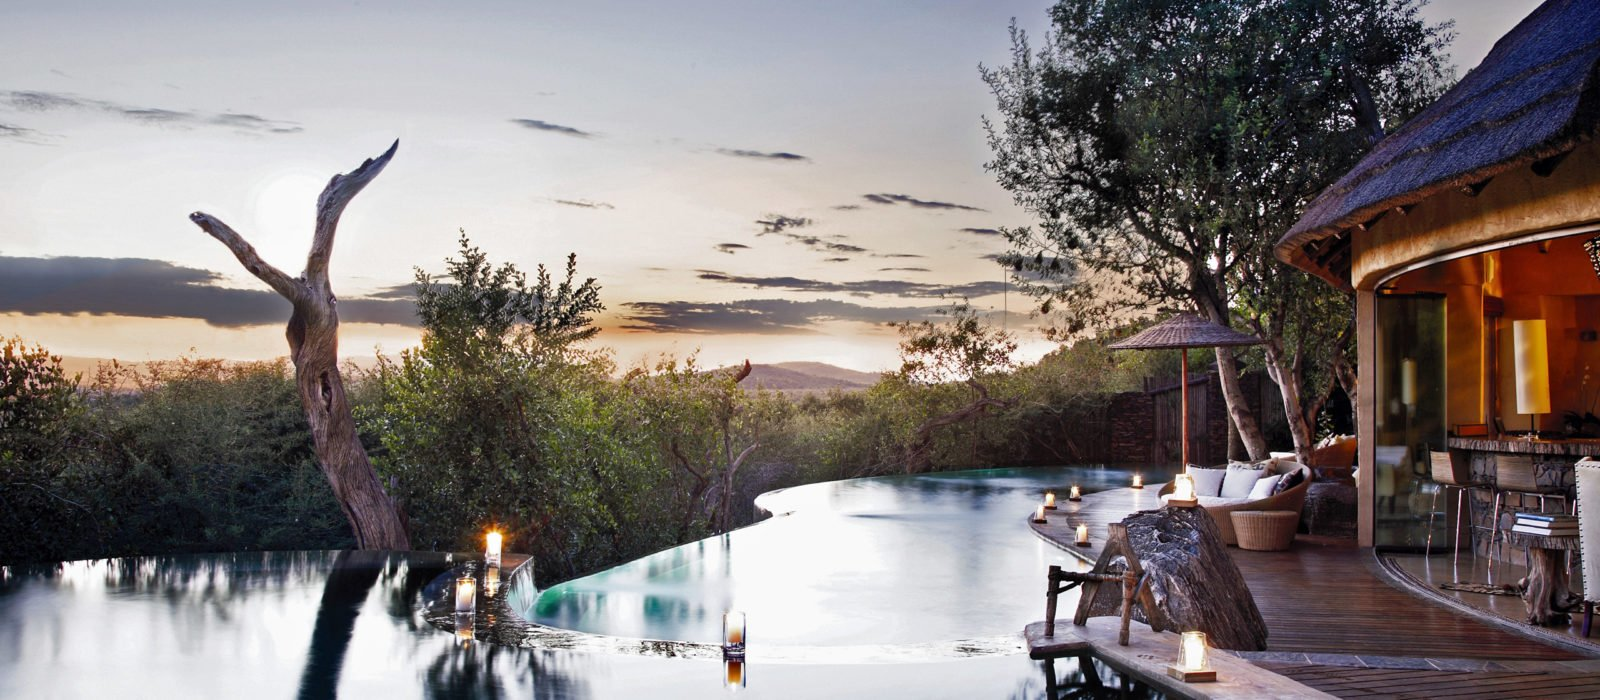 molori-lodge-madikwe-south-africa